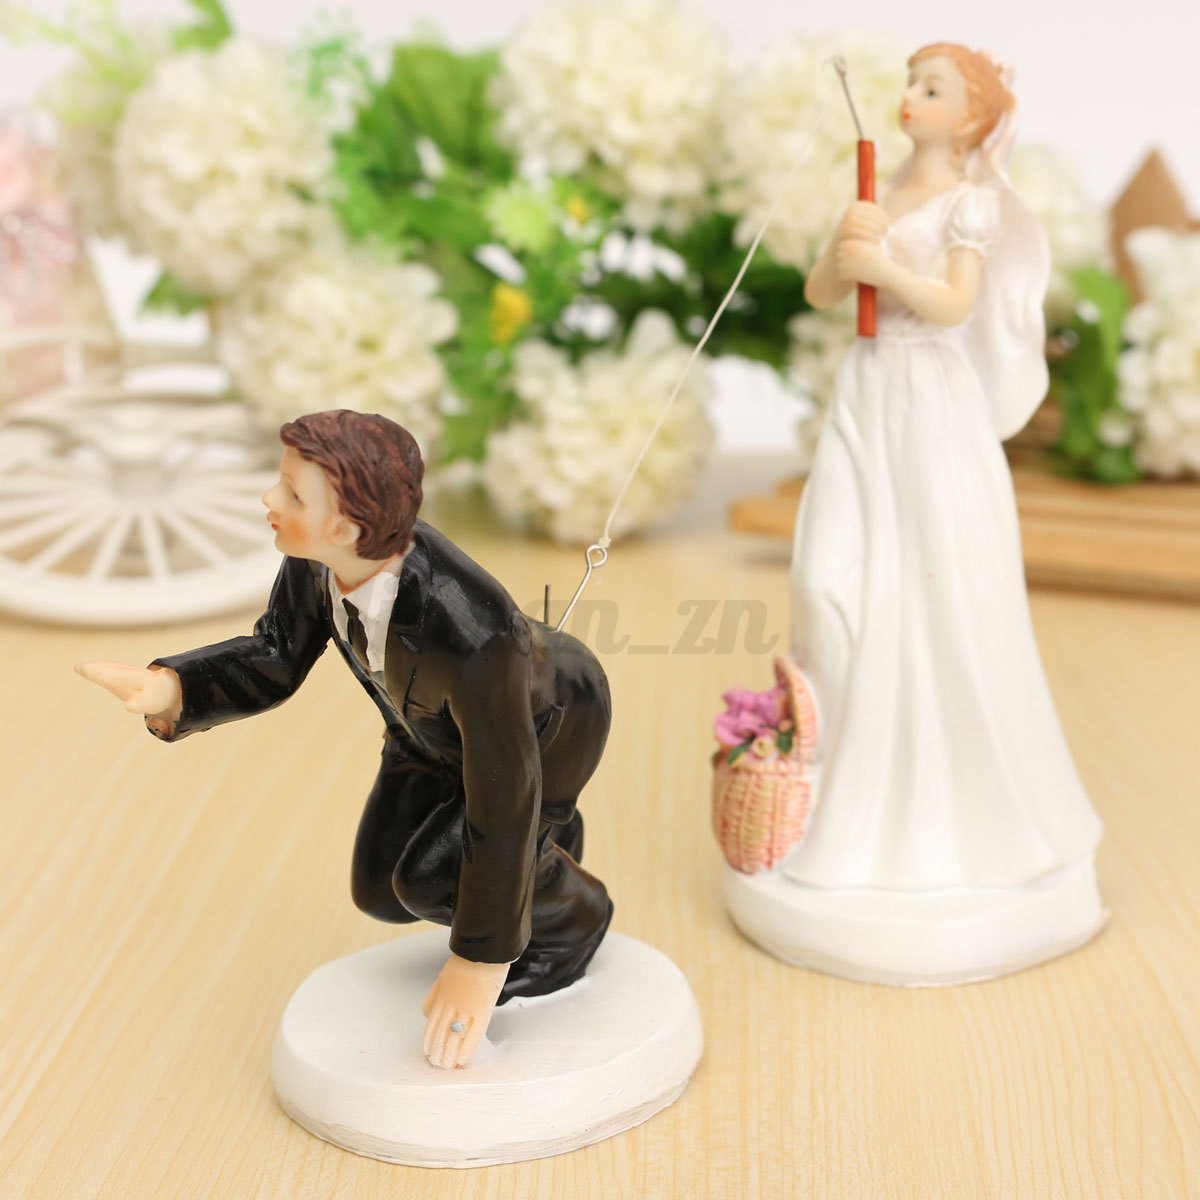 Bride Wedding Cake Topper: Romantic Bride & Groom Figure Wedding Cake Toppers Couple